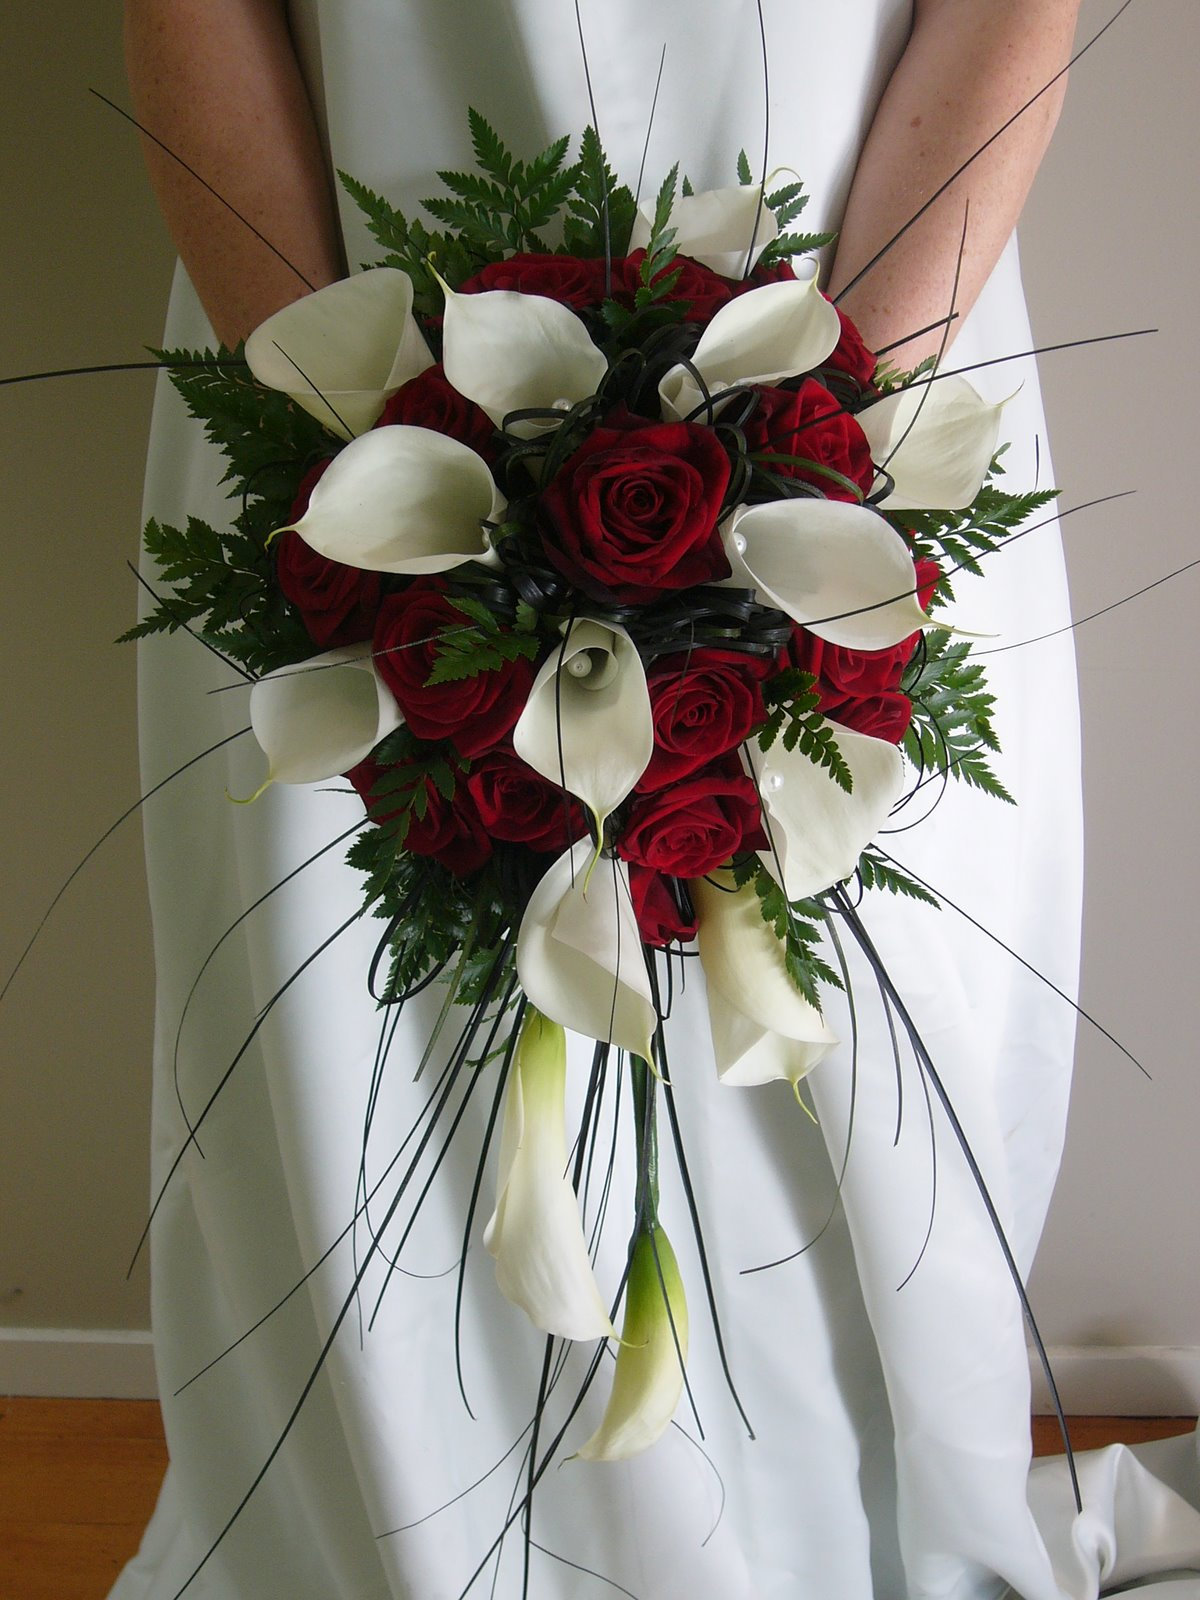 Wedding Flowers Roses And Lilies : Musings of a bride christmas themed wedding bouquet